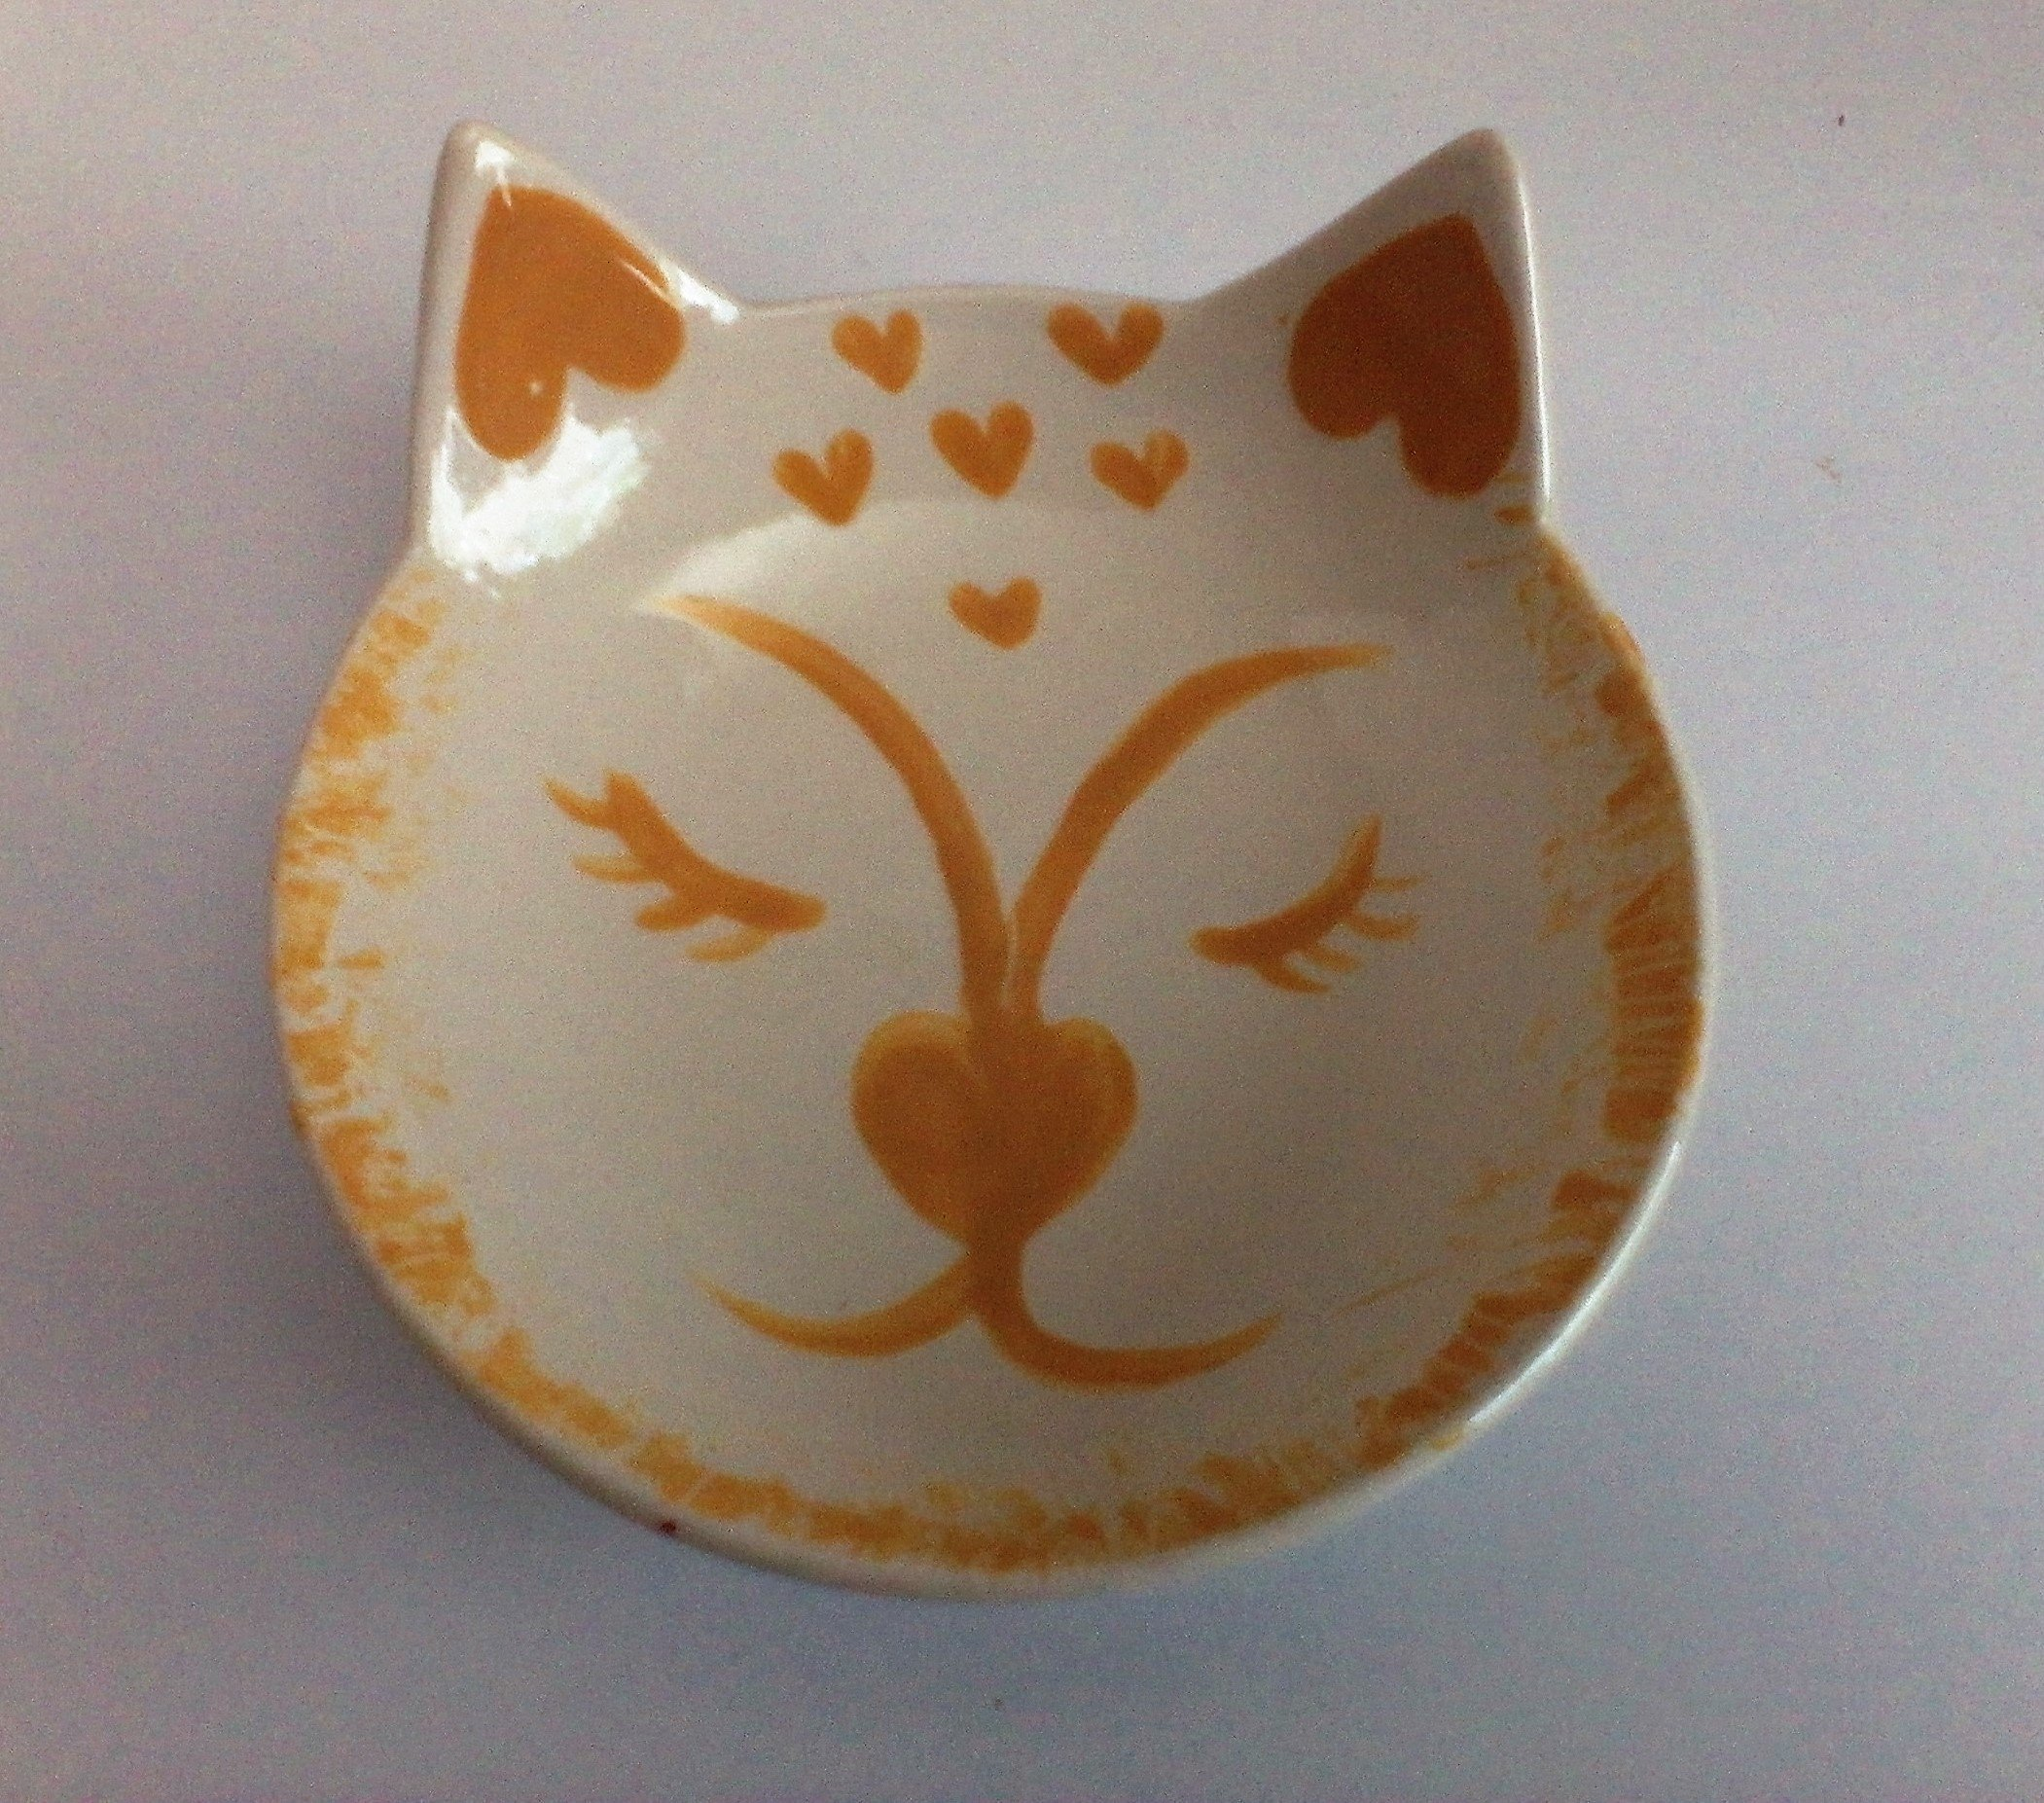 Calico cat water or feeding bowl